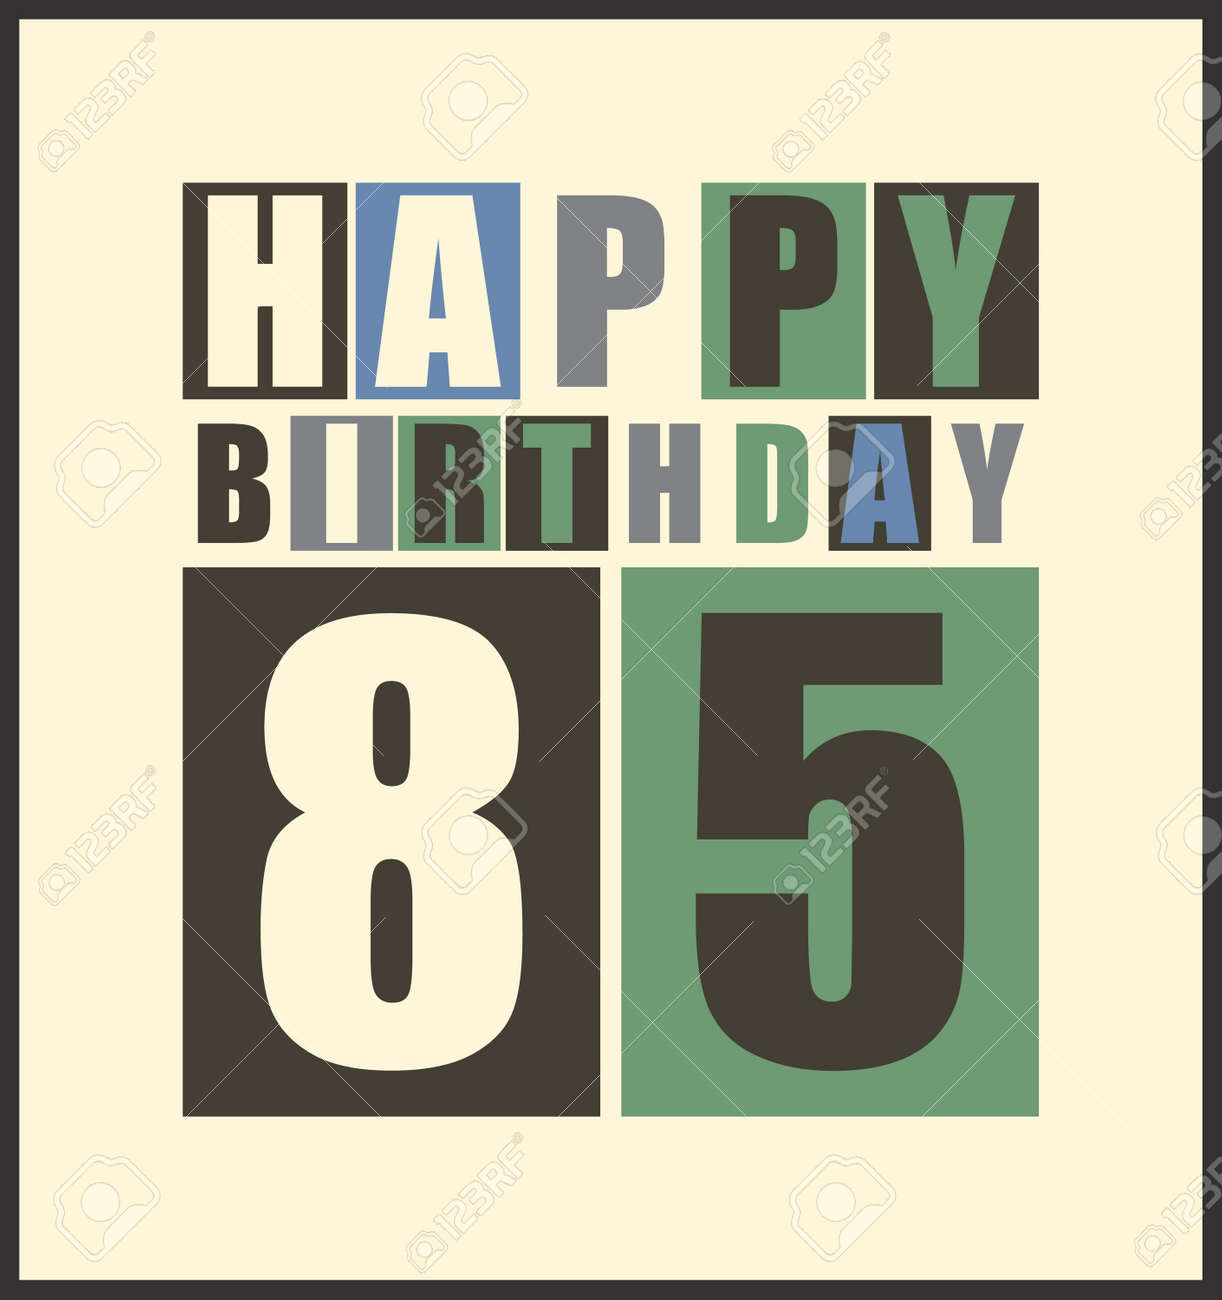 Retro Happy Birthday Card 85 Years Gift Vector Illustration Stock